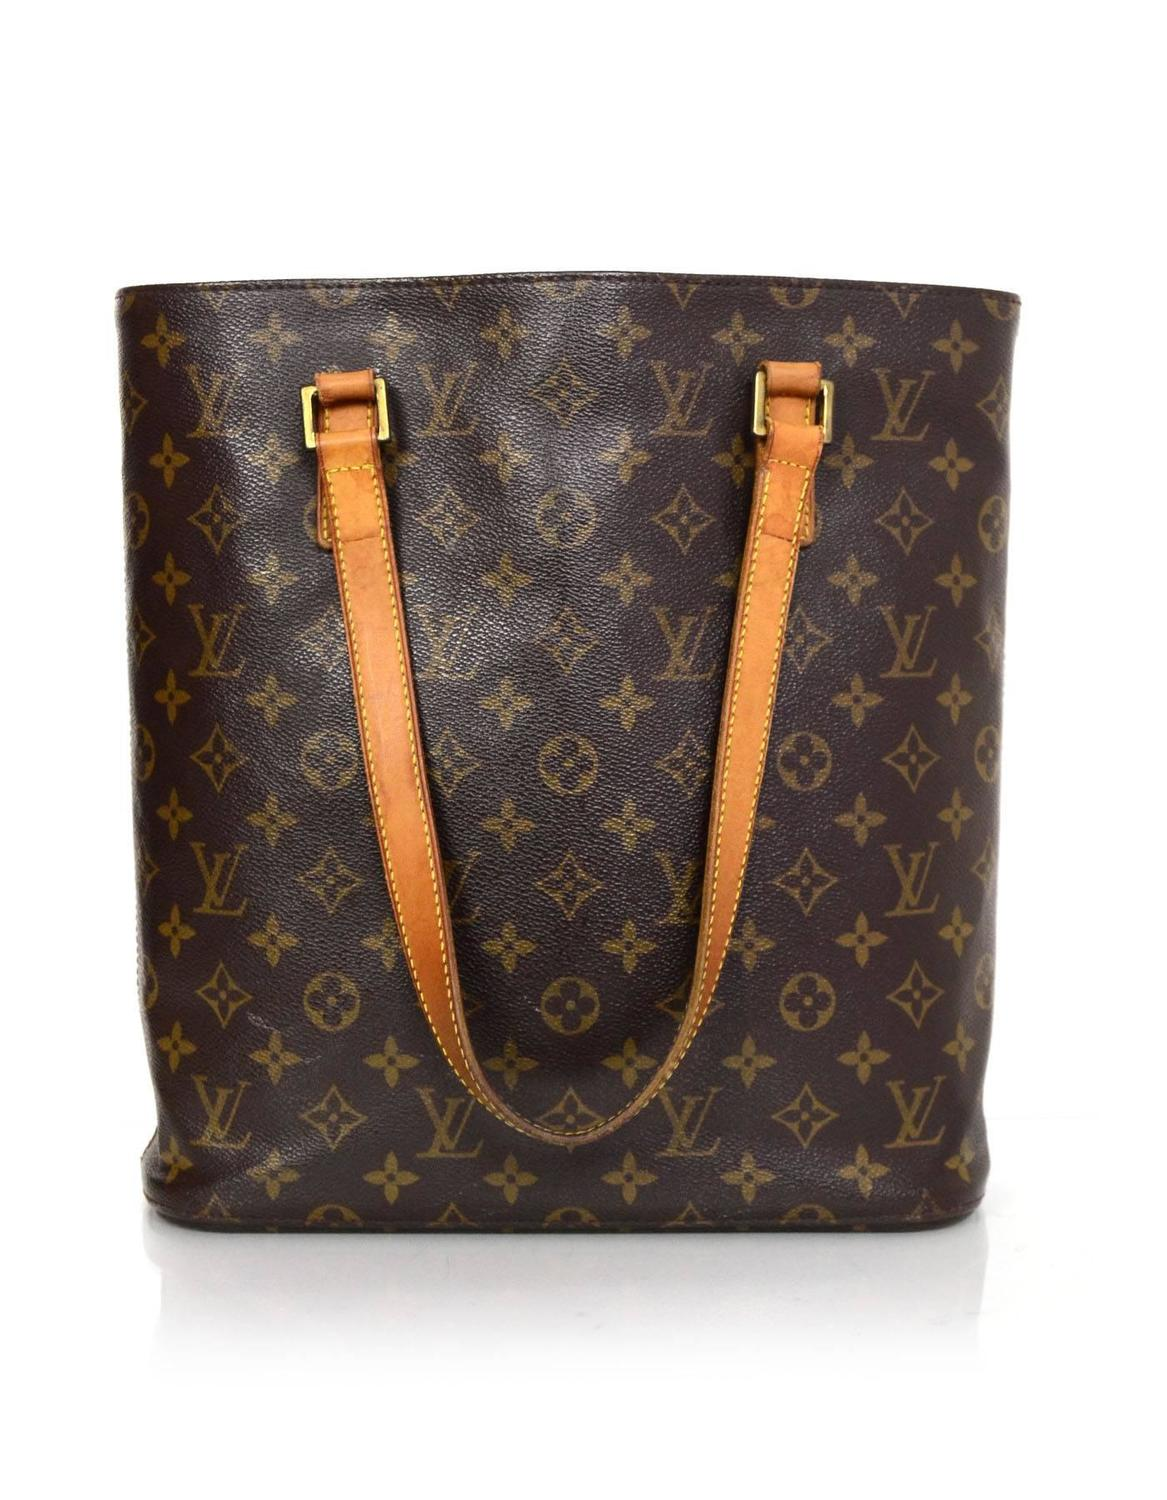 4590ae4f4c0c Louis Vuitton Monogram Vavin GM Tote Bag For Sale at 1stdibs